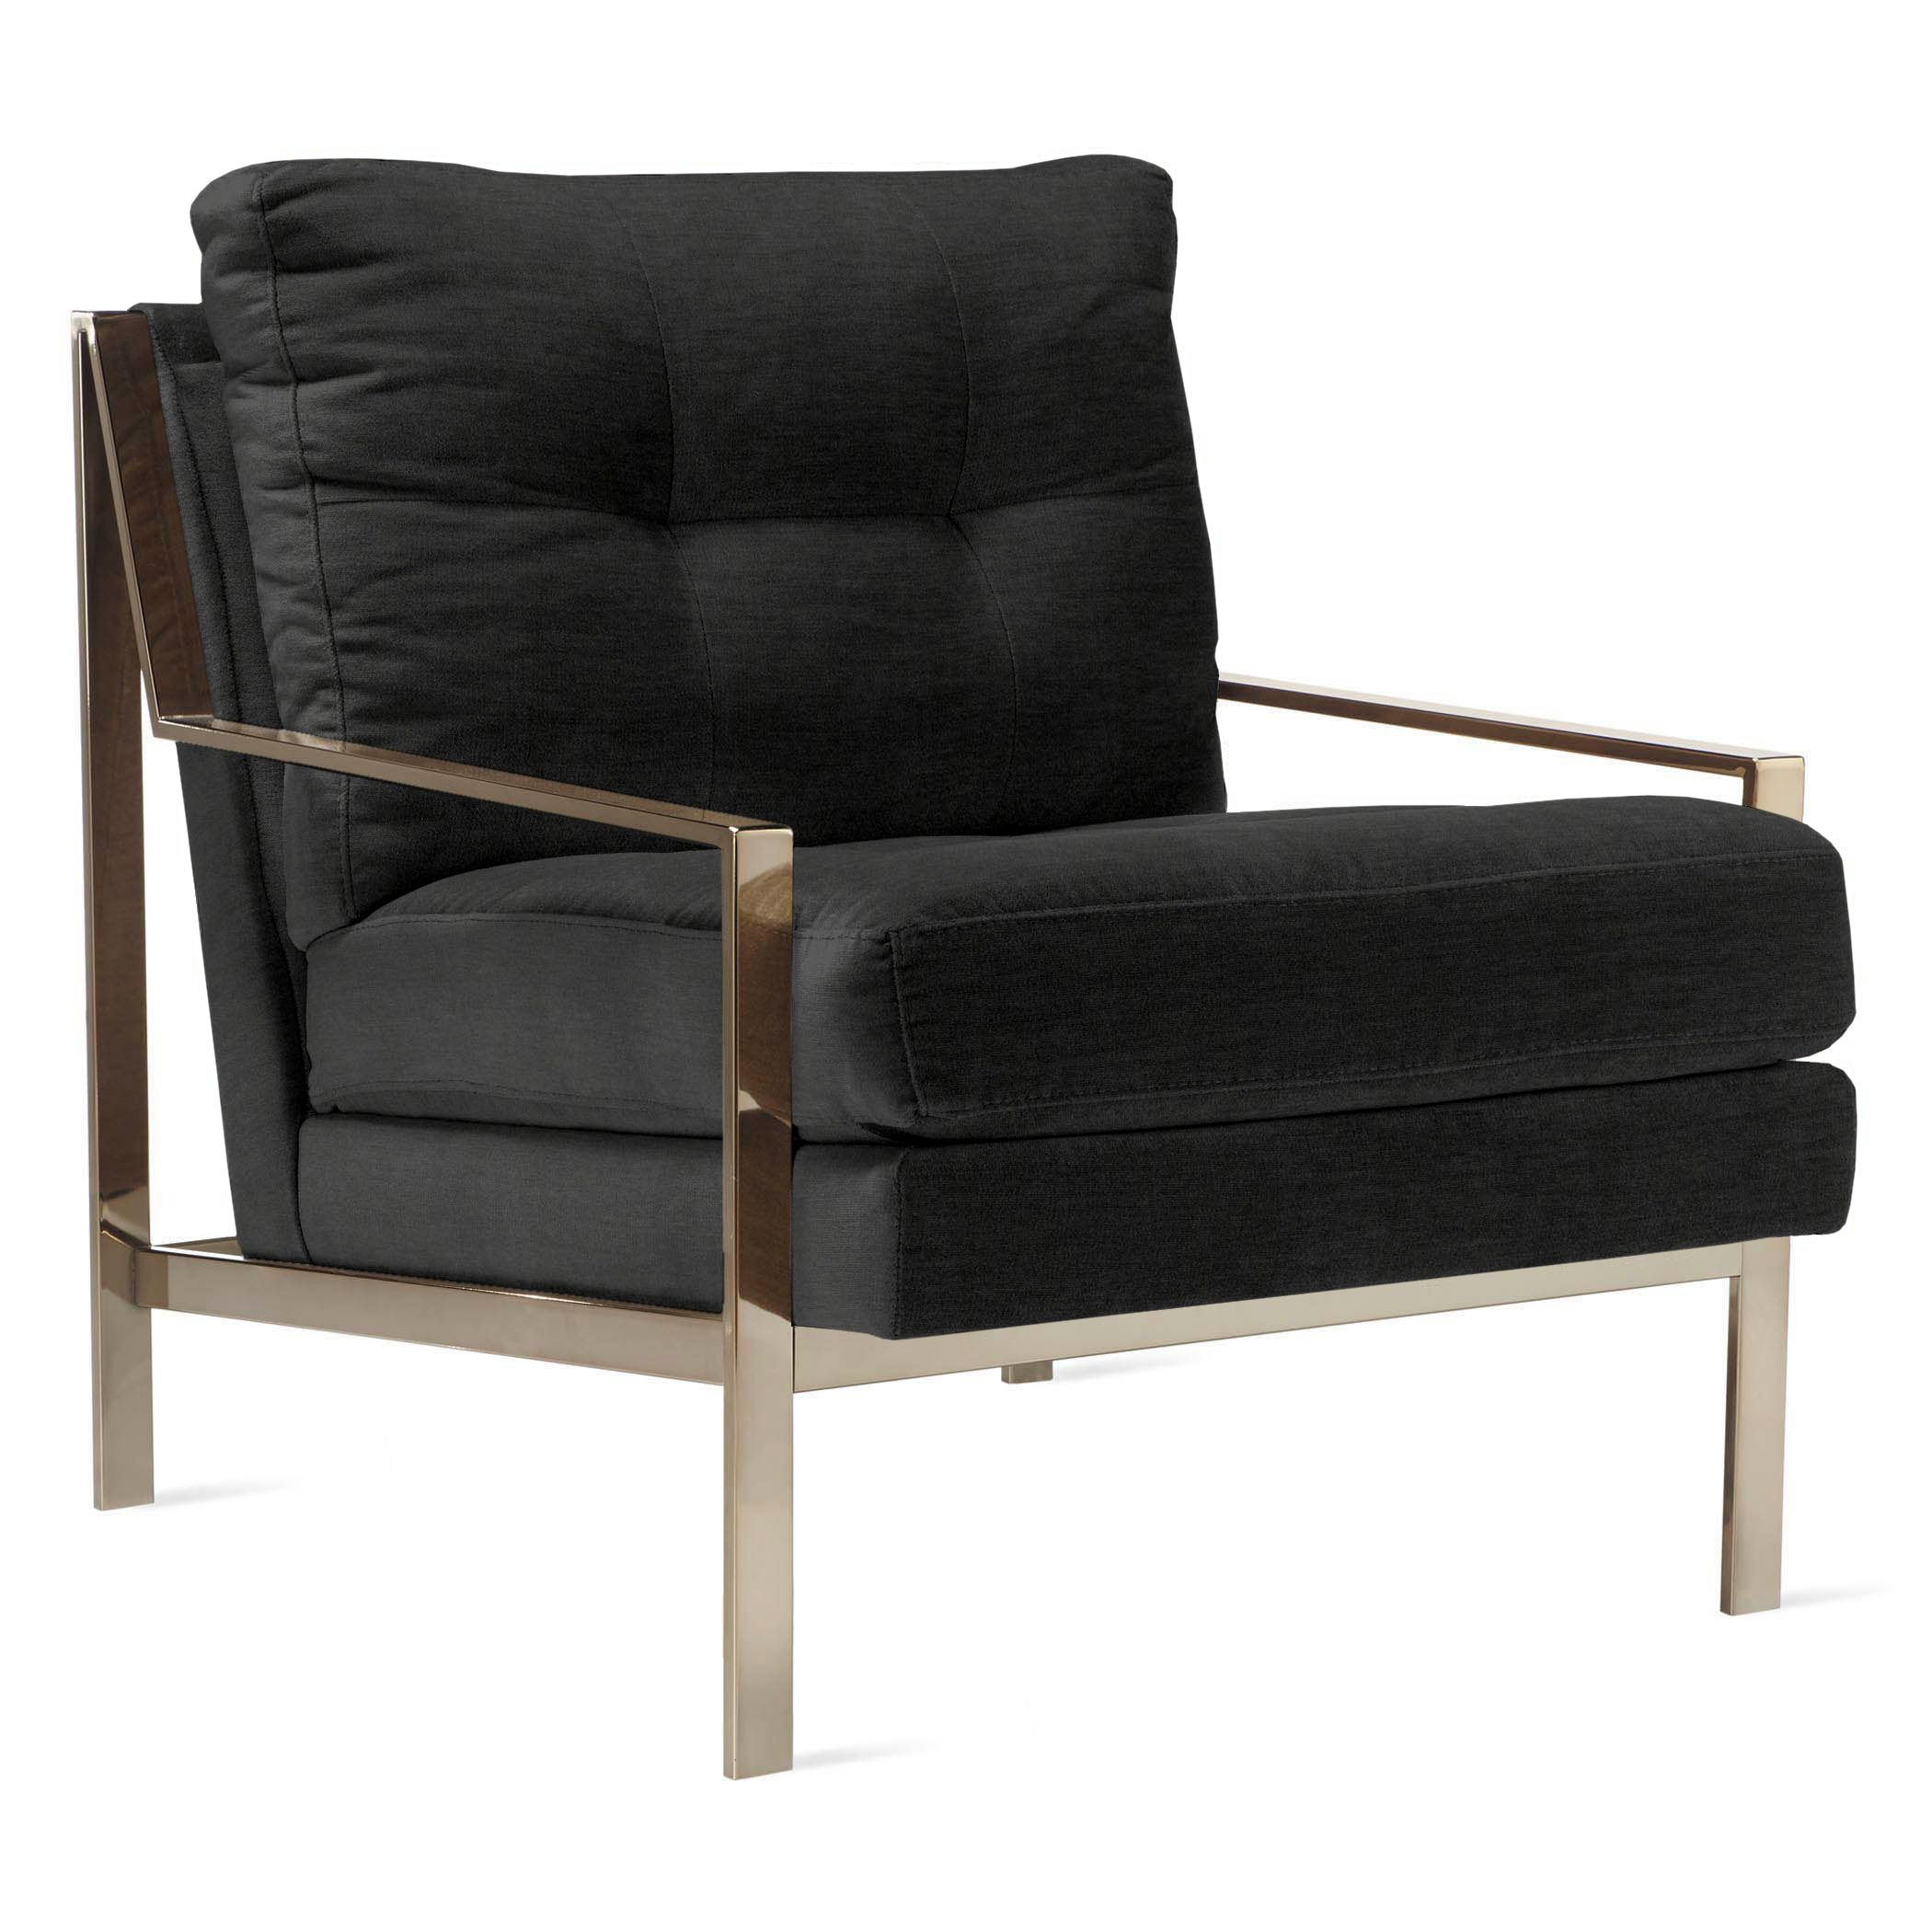 Axel Accent Chair - Champagne